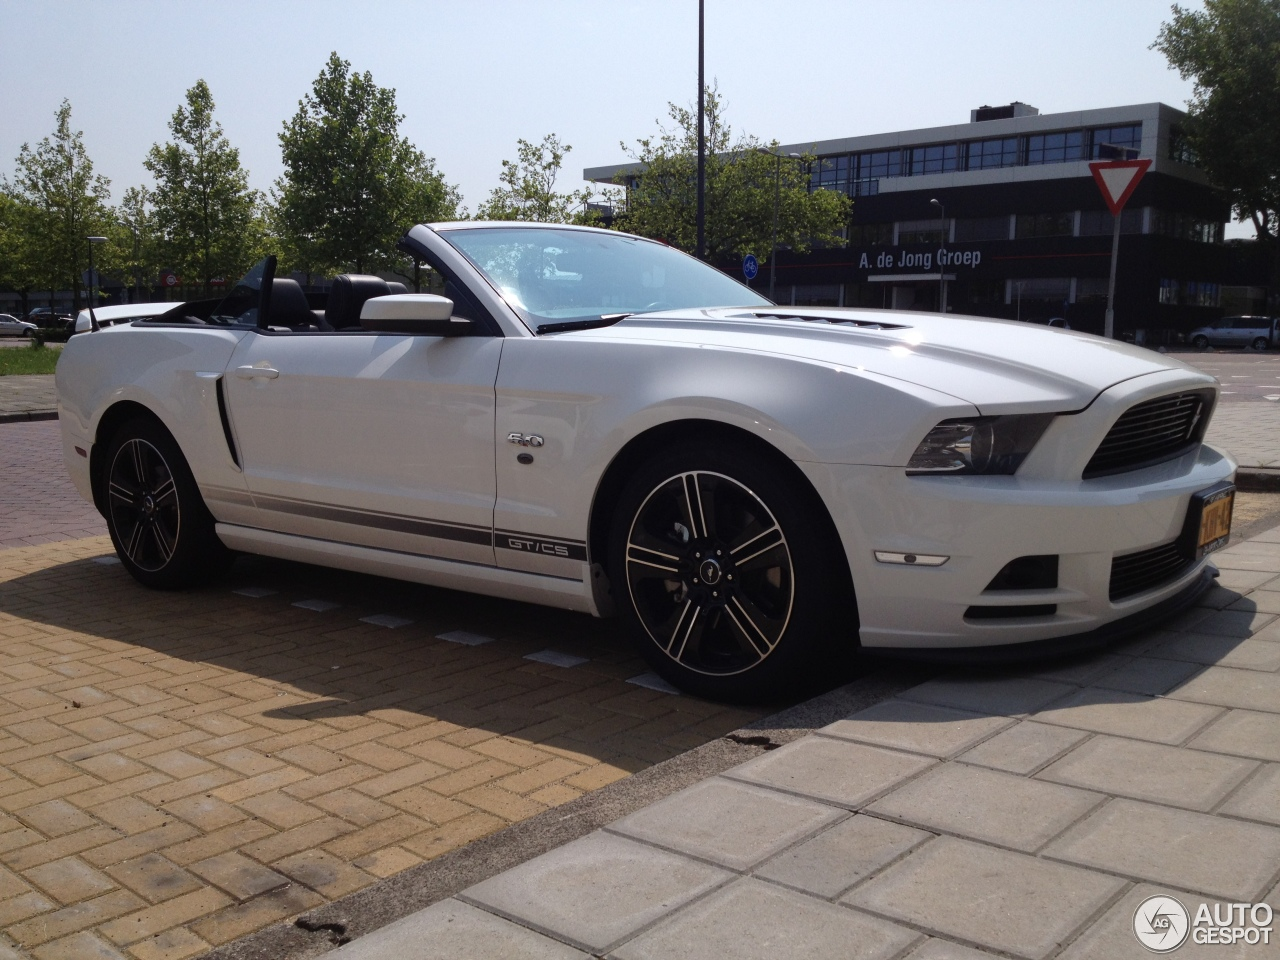 Ford Mustang Gt California Special Convertible 2012 5